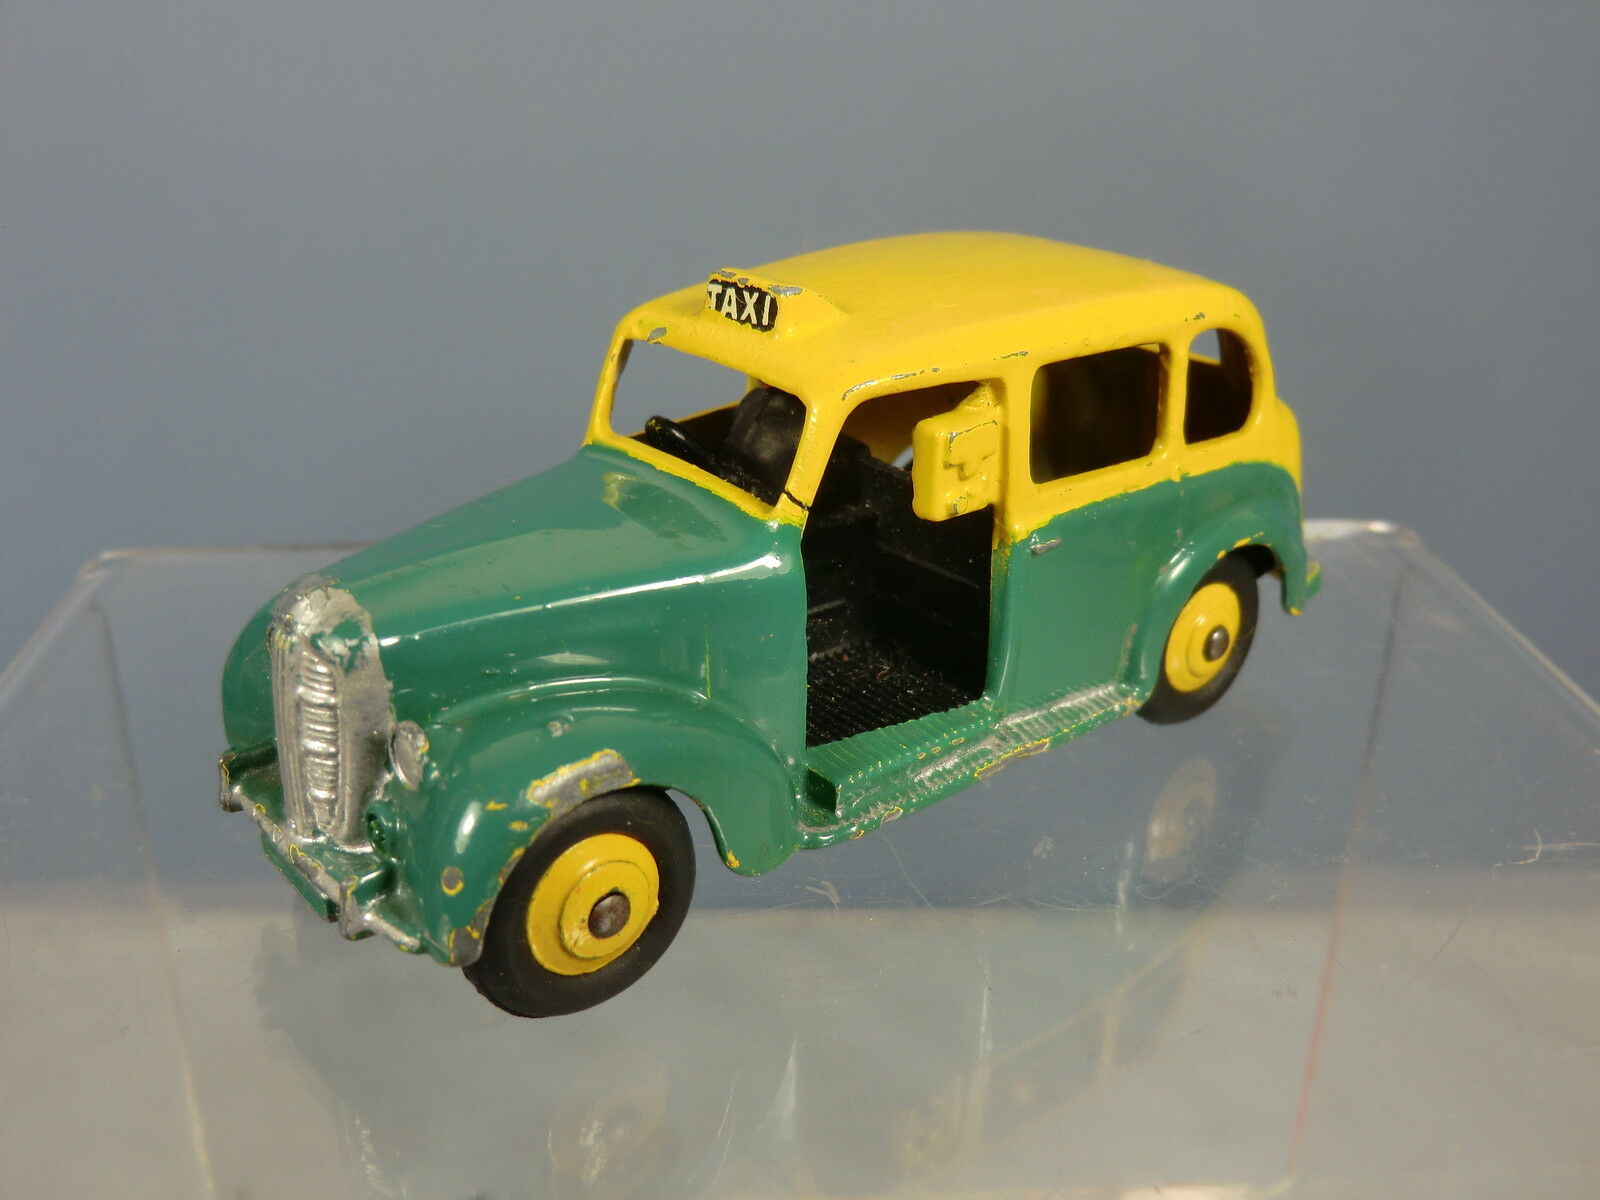 DINKY SpielzeugS  Modelll No.254 AUSTIN FX3 TAXI